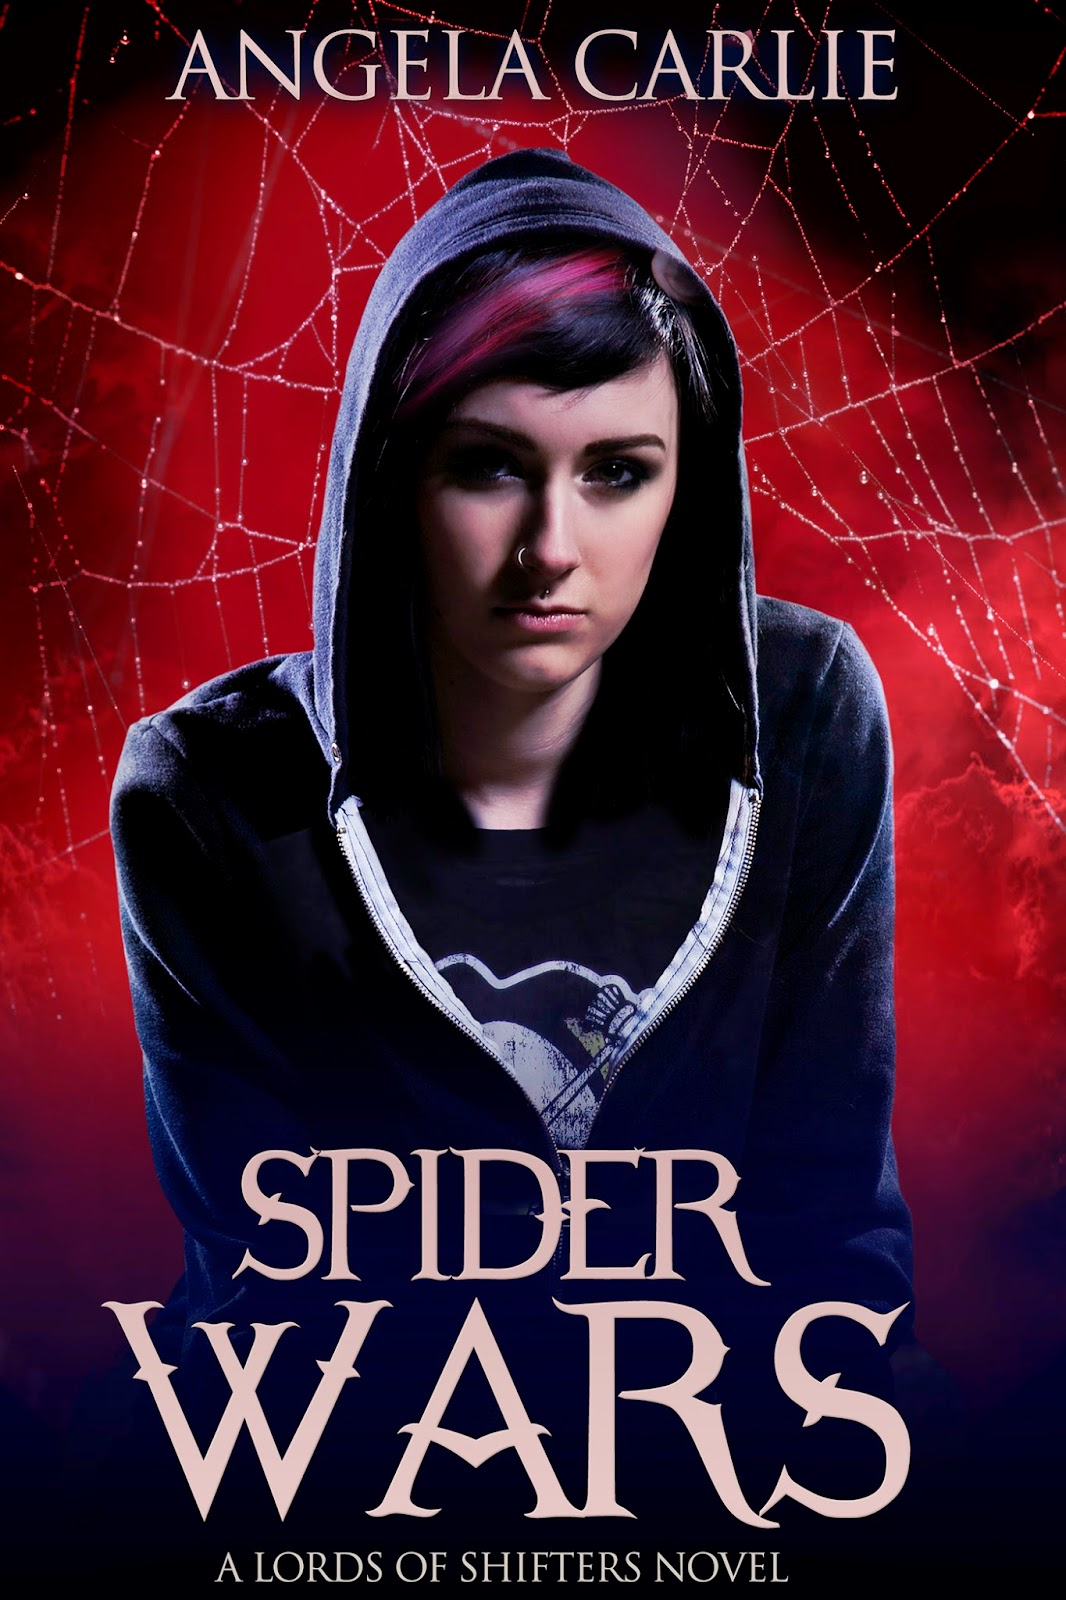 http://www.amazon.com/Spider-Lords-Shifters-Angela-Carlie-ebook/dp/B007K3Y34O/ref=pd_sim_kstore_1?ie=UTF8&refRID=1GC029BFN06QW0YV2G9Y